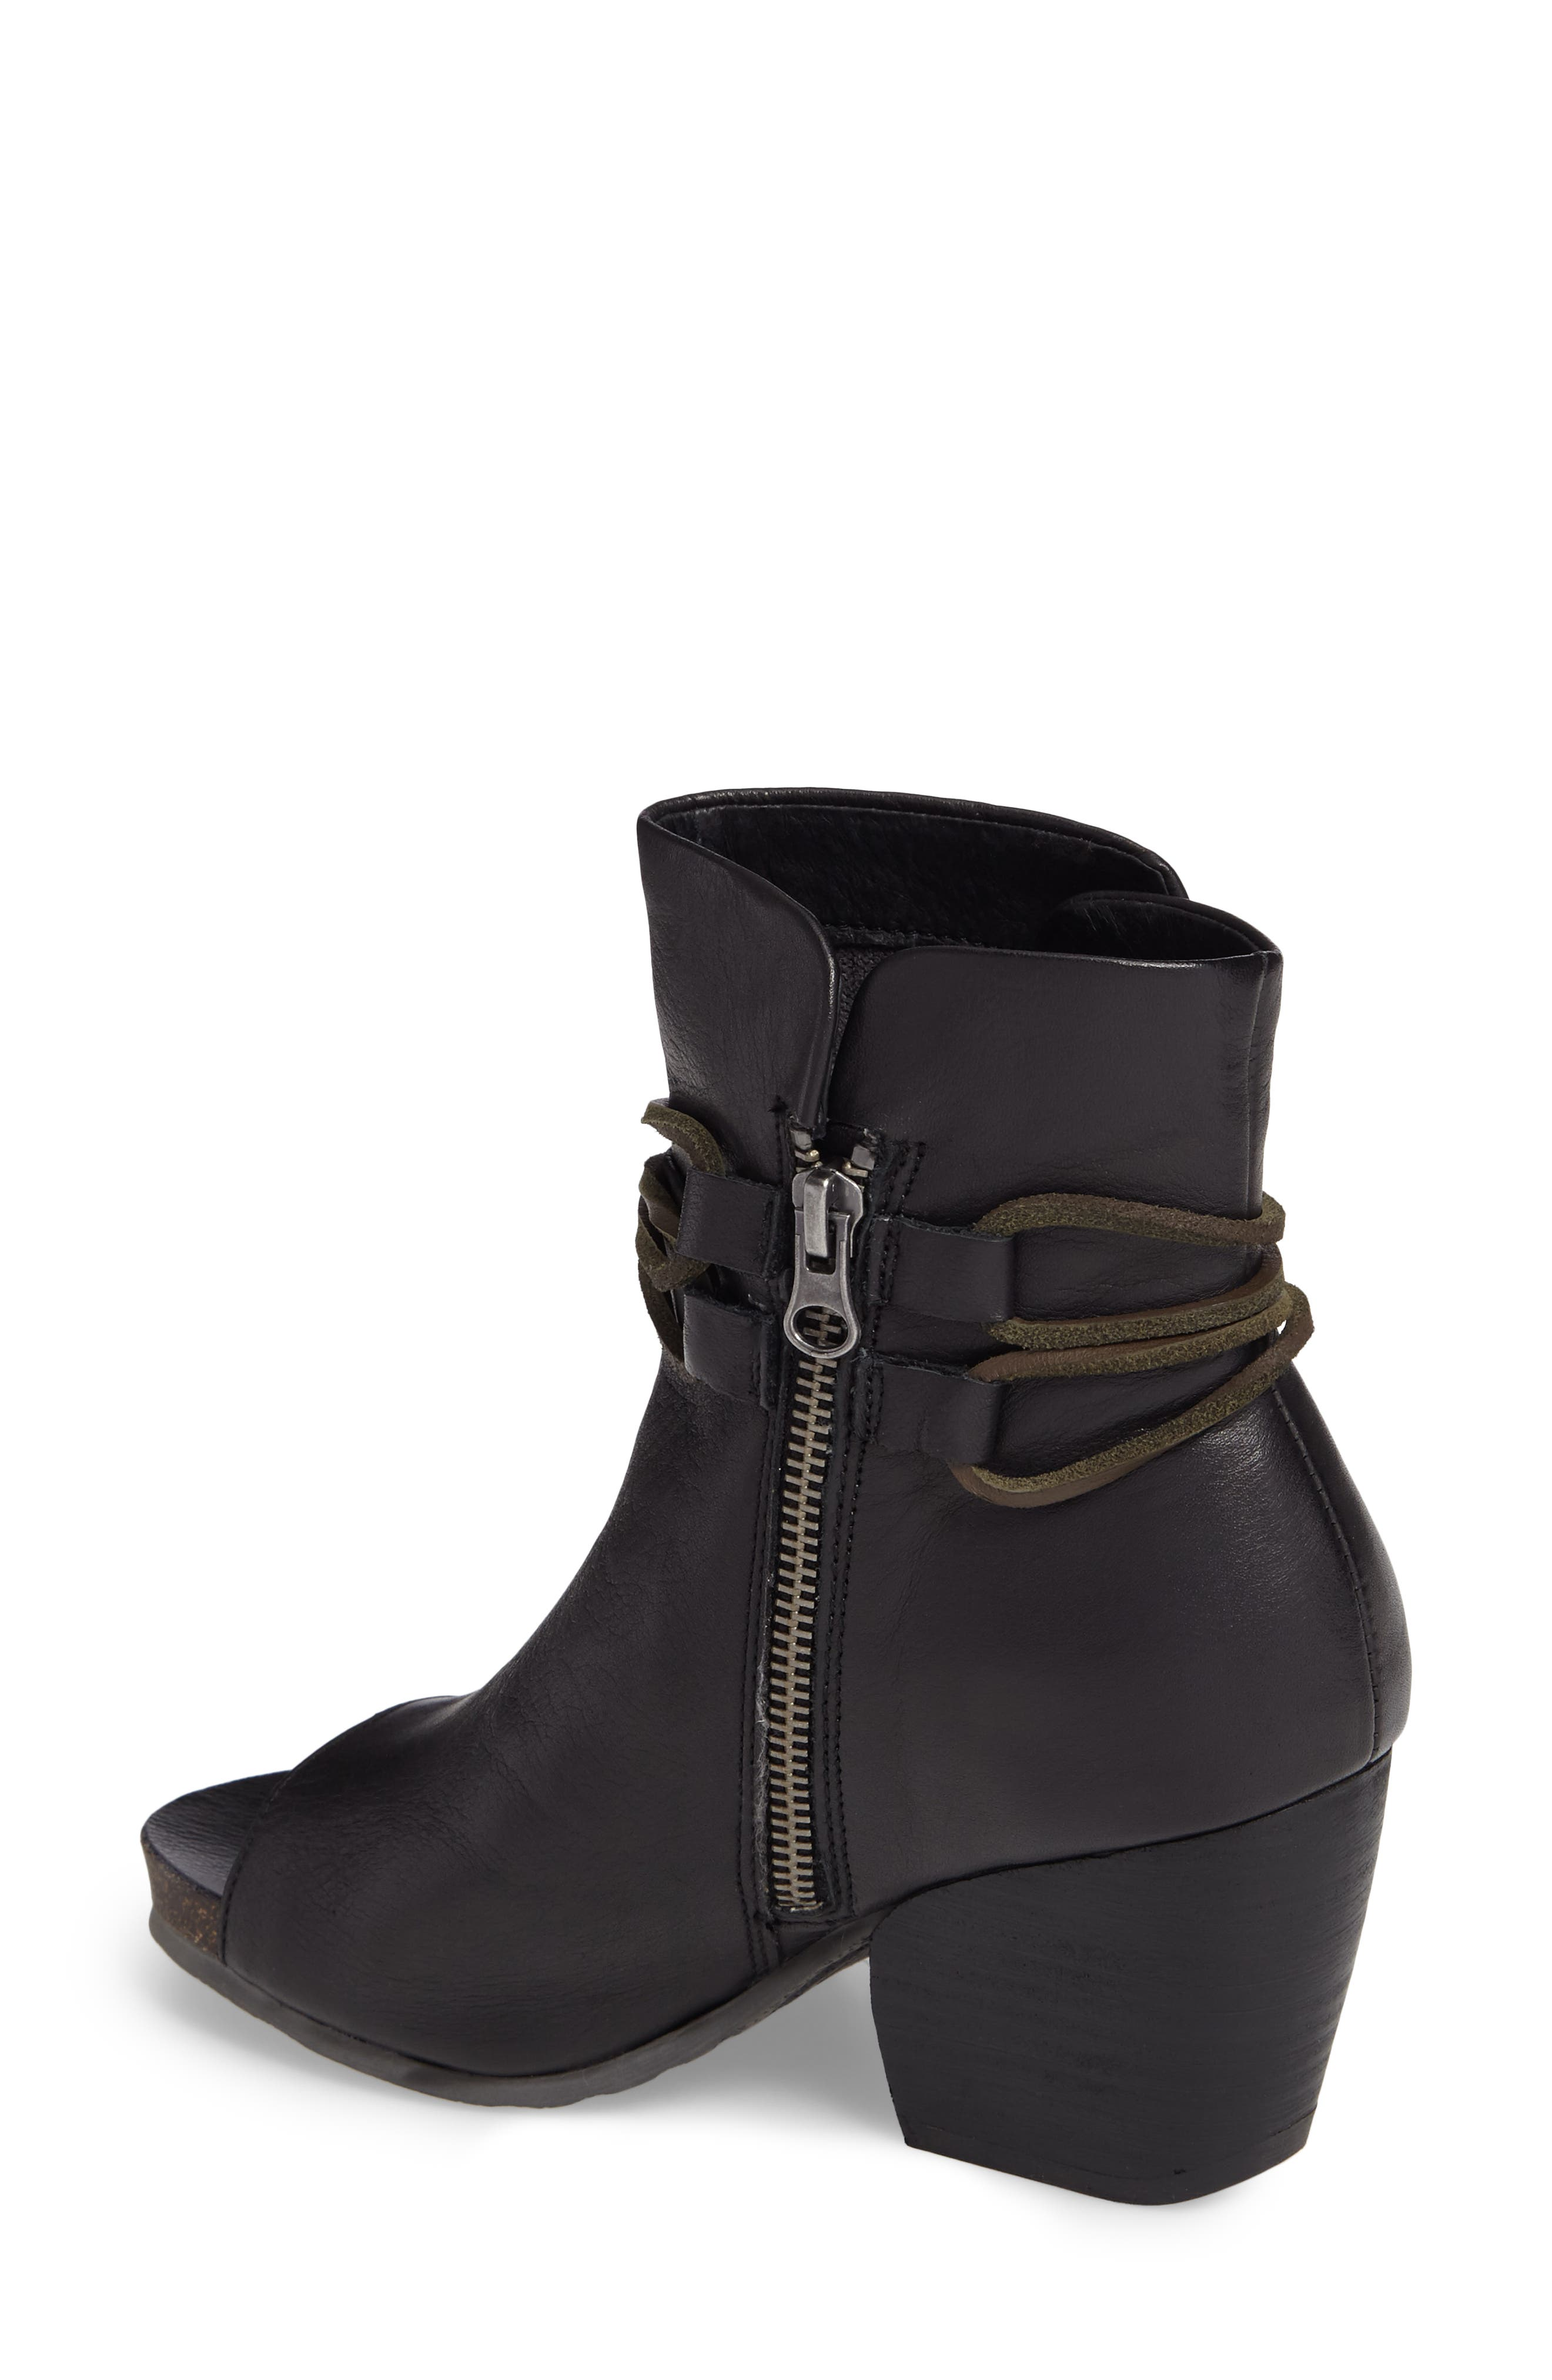 Open Toe Bootie,                             Alternate thumbnail 2, color,                             Black Leather